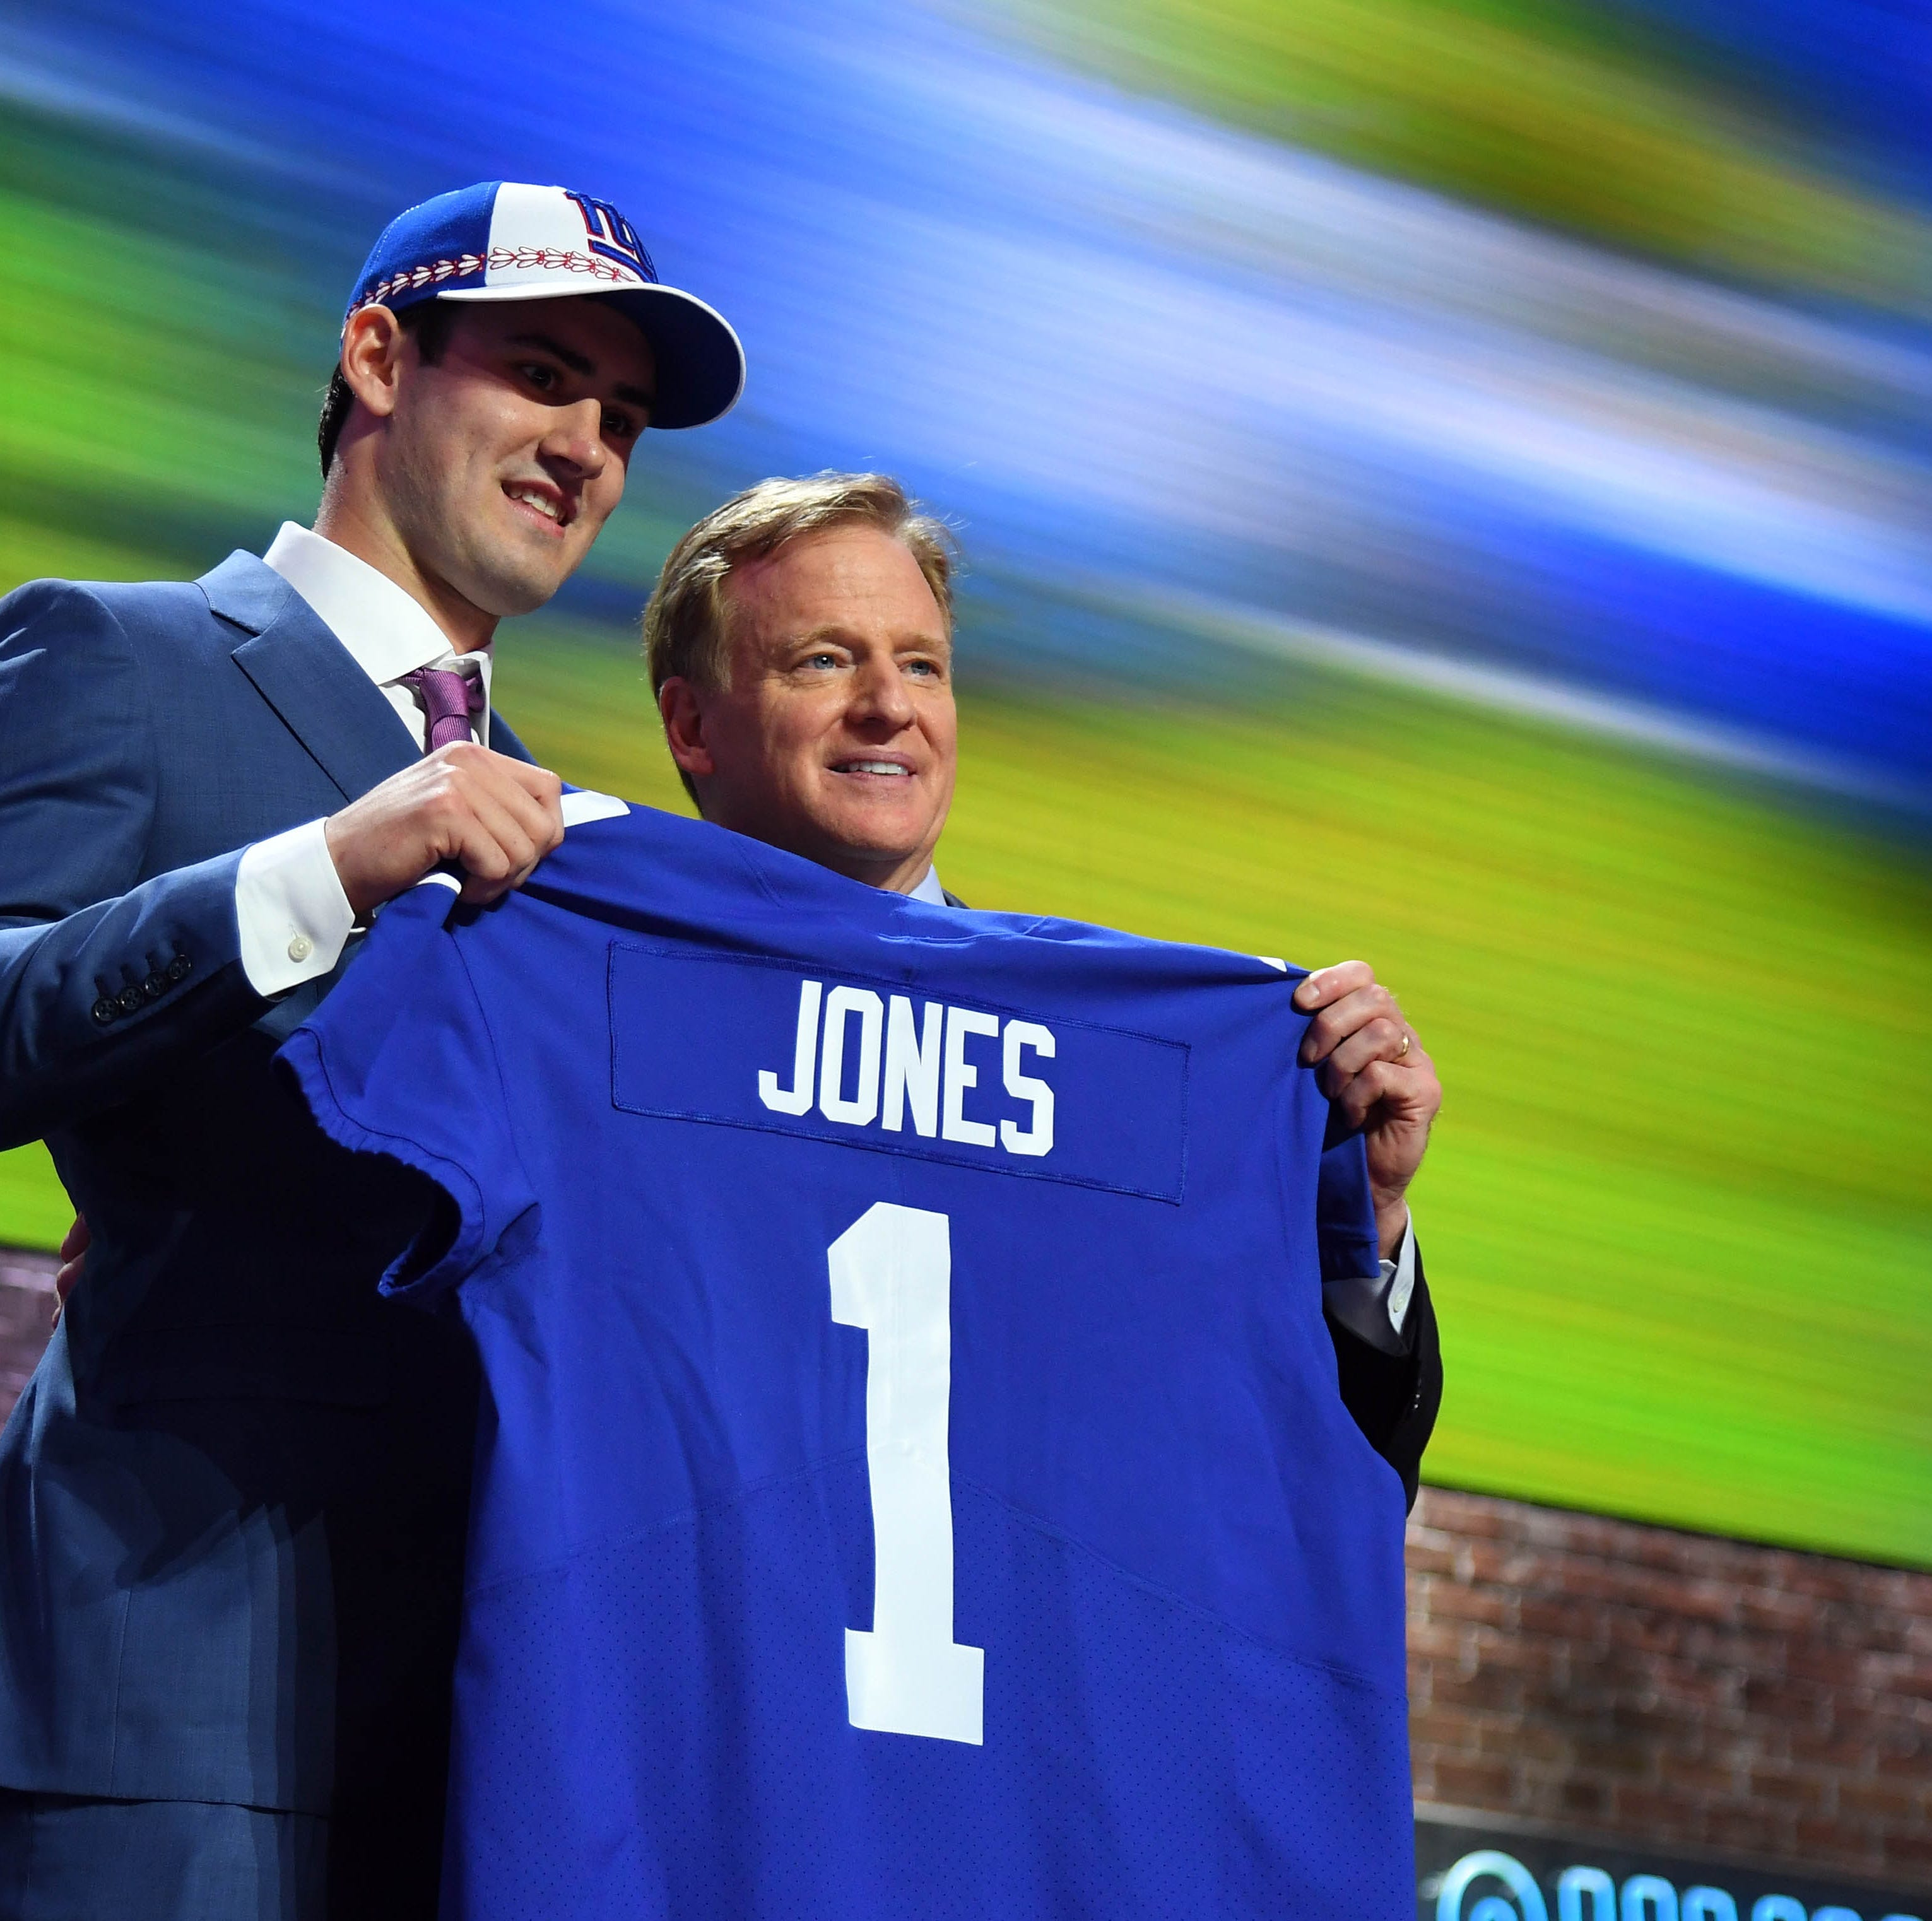 Giants take Daniel Jones with the No. 6 pick in the NFL Draft